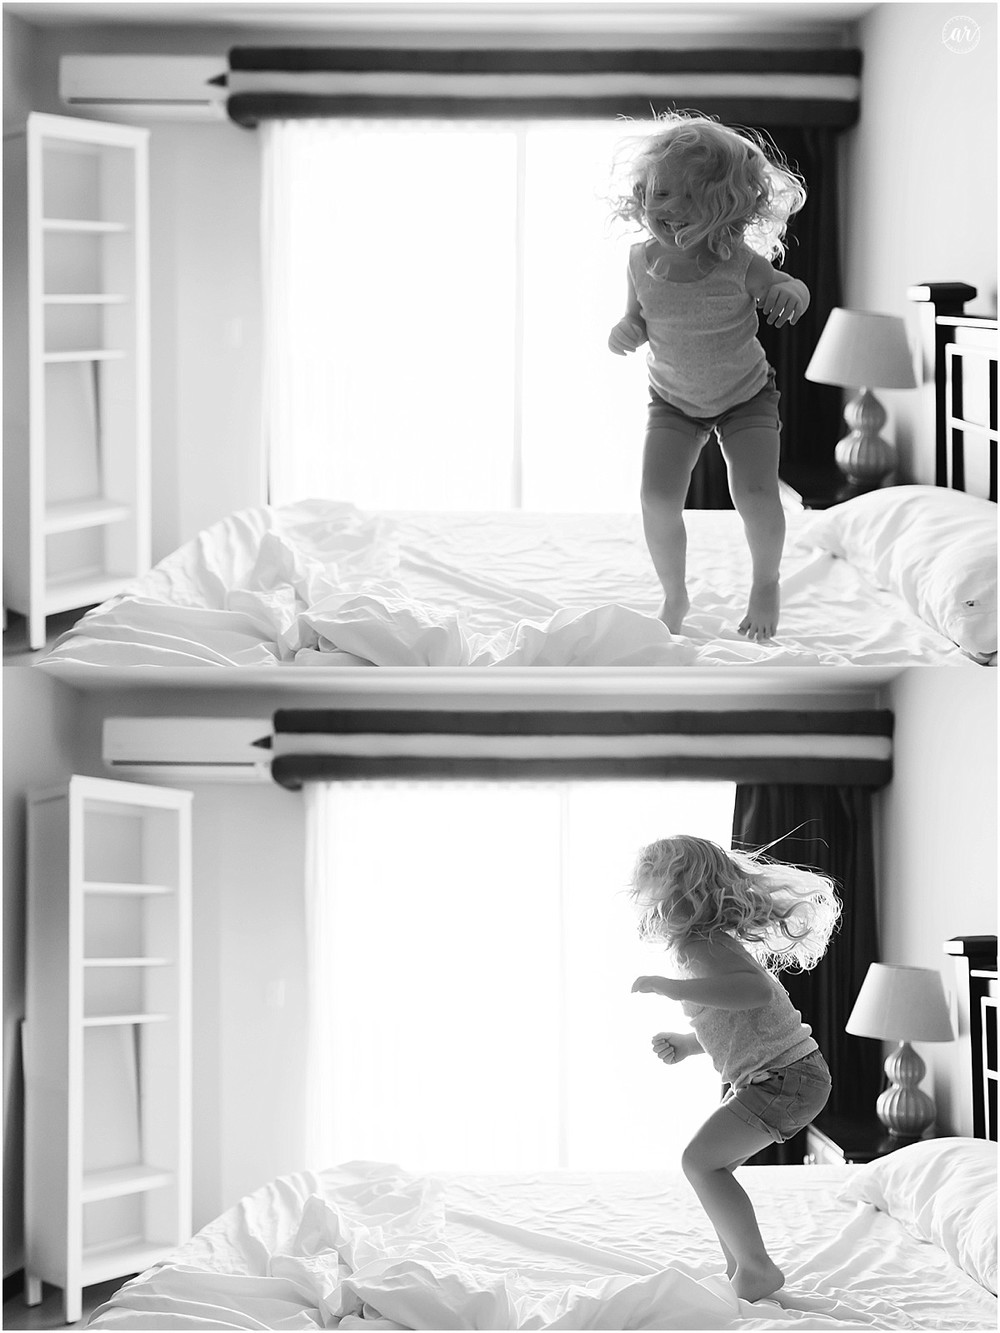 That's me jumping on the bed! Like this!!!! Heheheh. Like this, that's me jumping on the bed, like this. Jump a jump a jump a jump... (She is now jumping on my bed!)